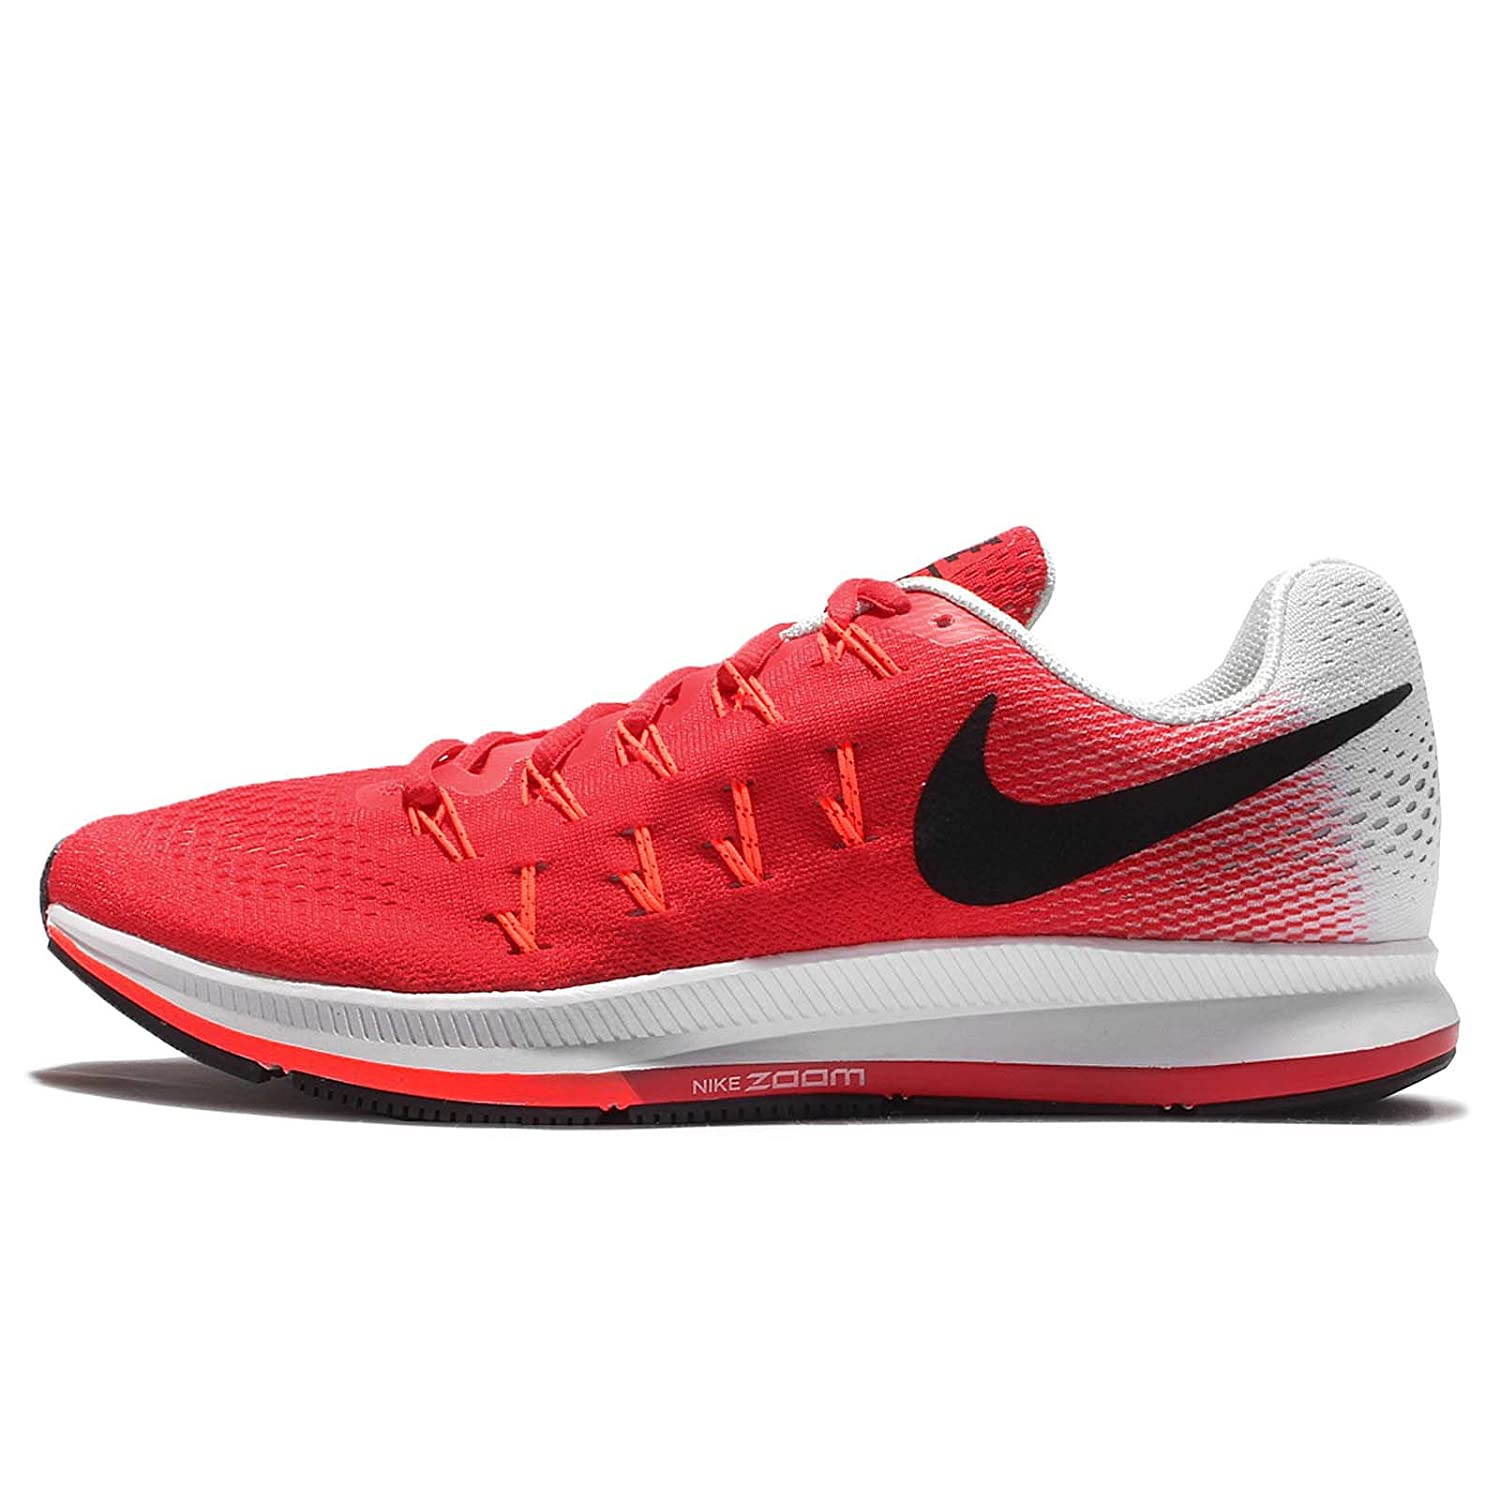 Nike Men's Air Zoom Pegasus 33 B001AF0SA6 14 Crimson D(M) US|Action Red/Black-pure Platinum-total Crimson 14 2e9ed7